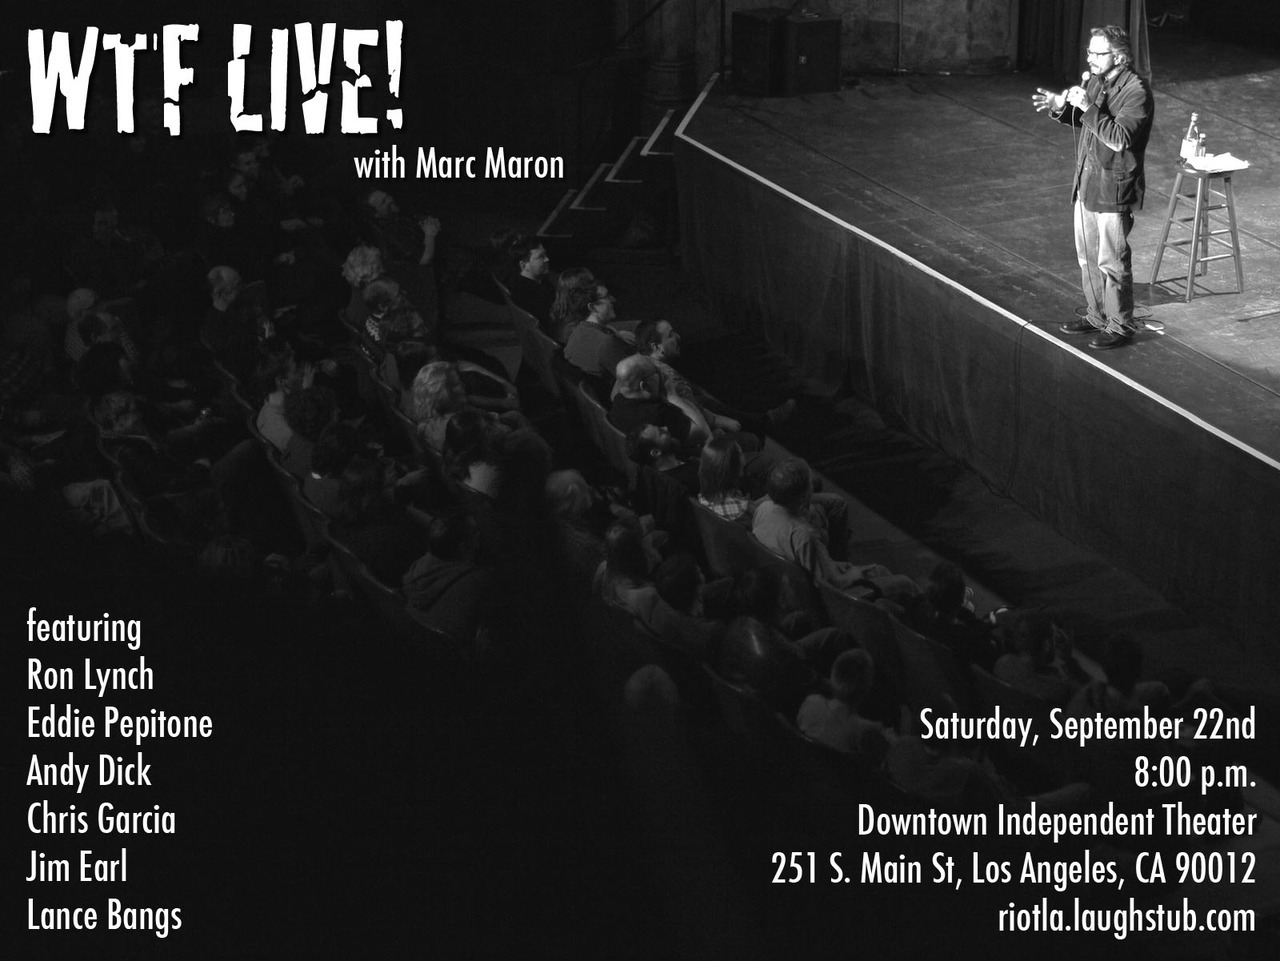 WTF Live! with Marc Maron at Riot LA Comedy Festival, Saturday September 22nd 2012. Tickets at http://riotla.laughstub.com/